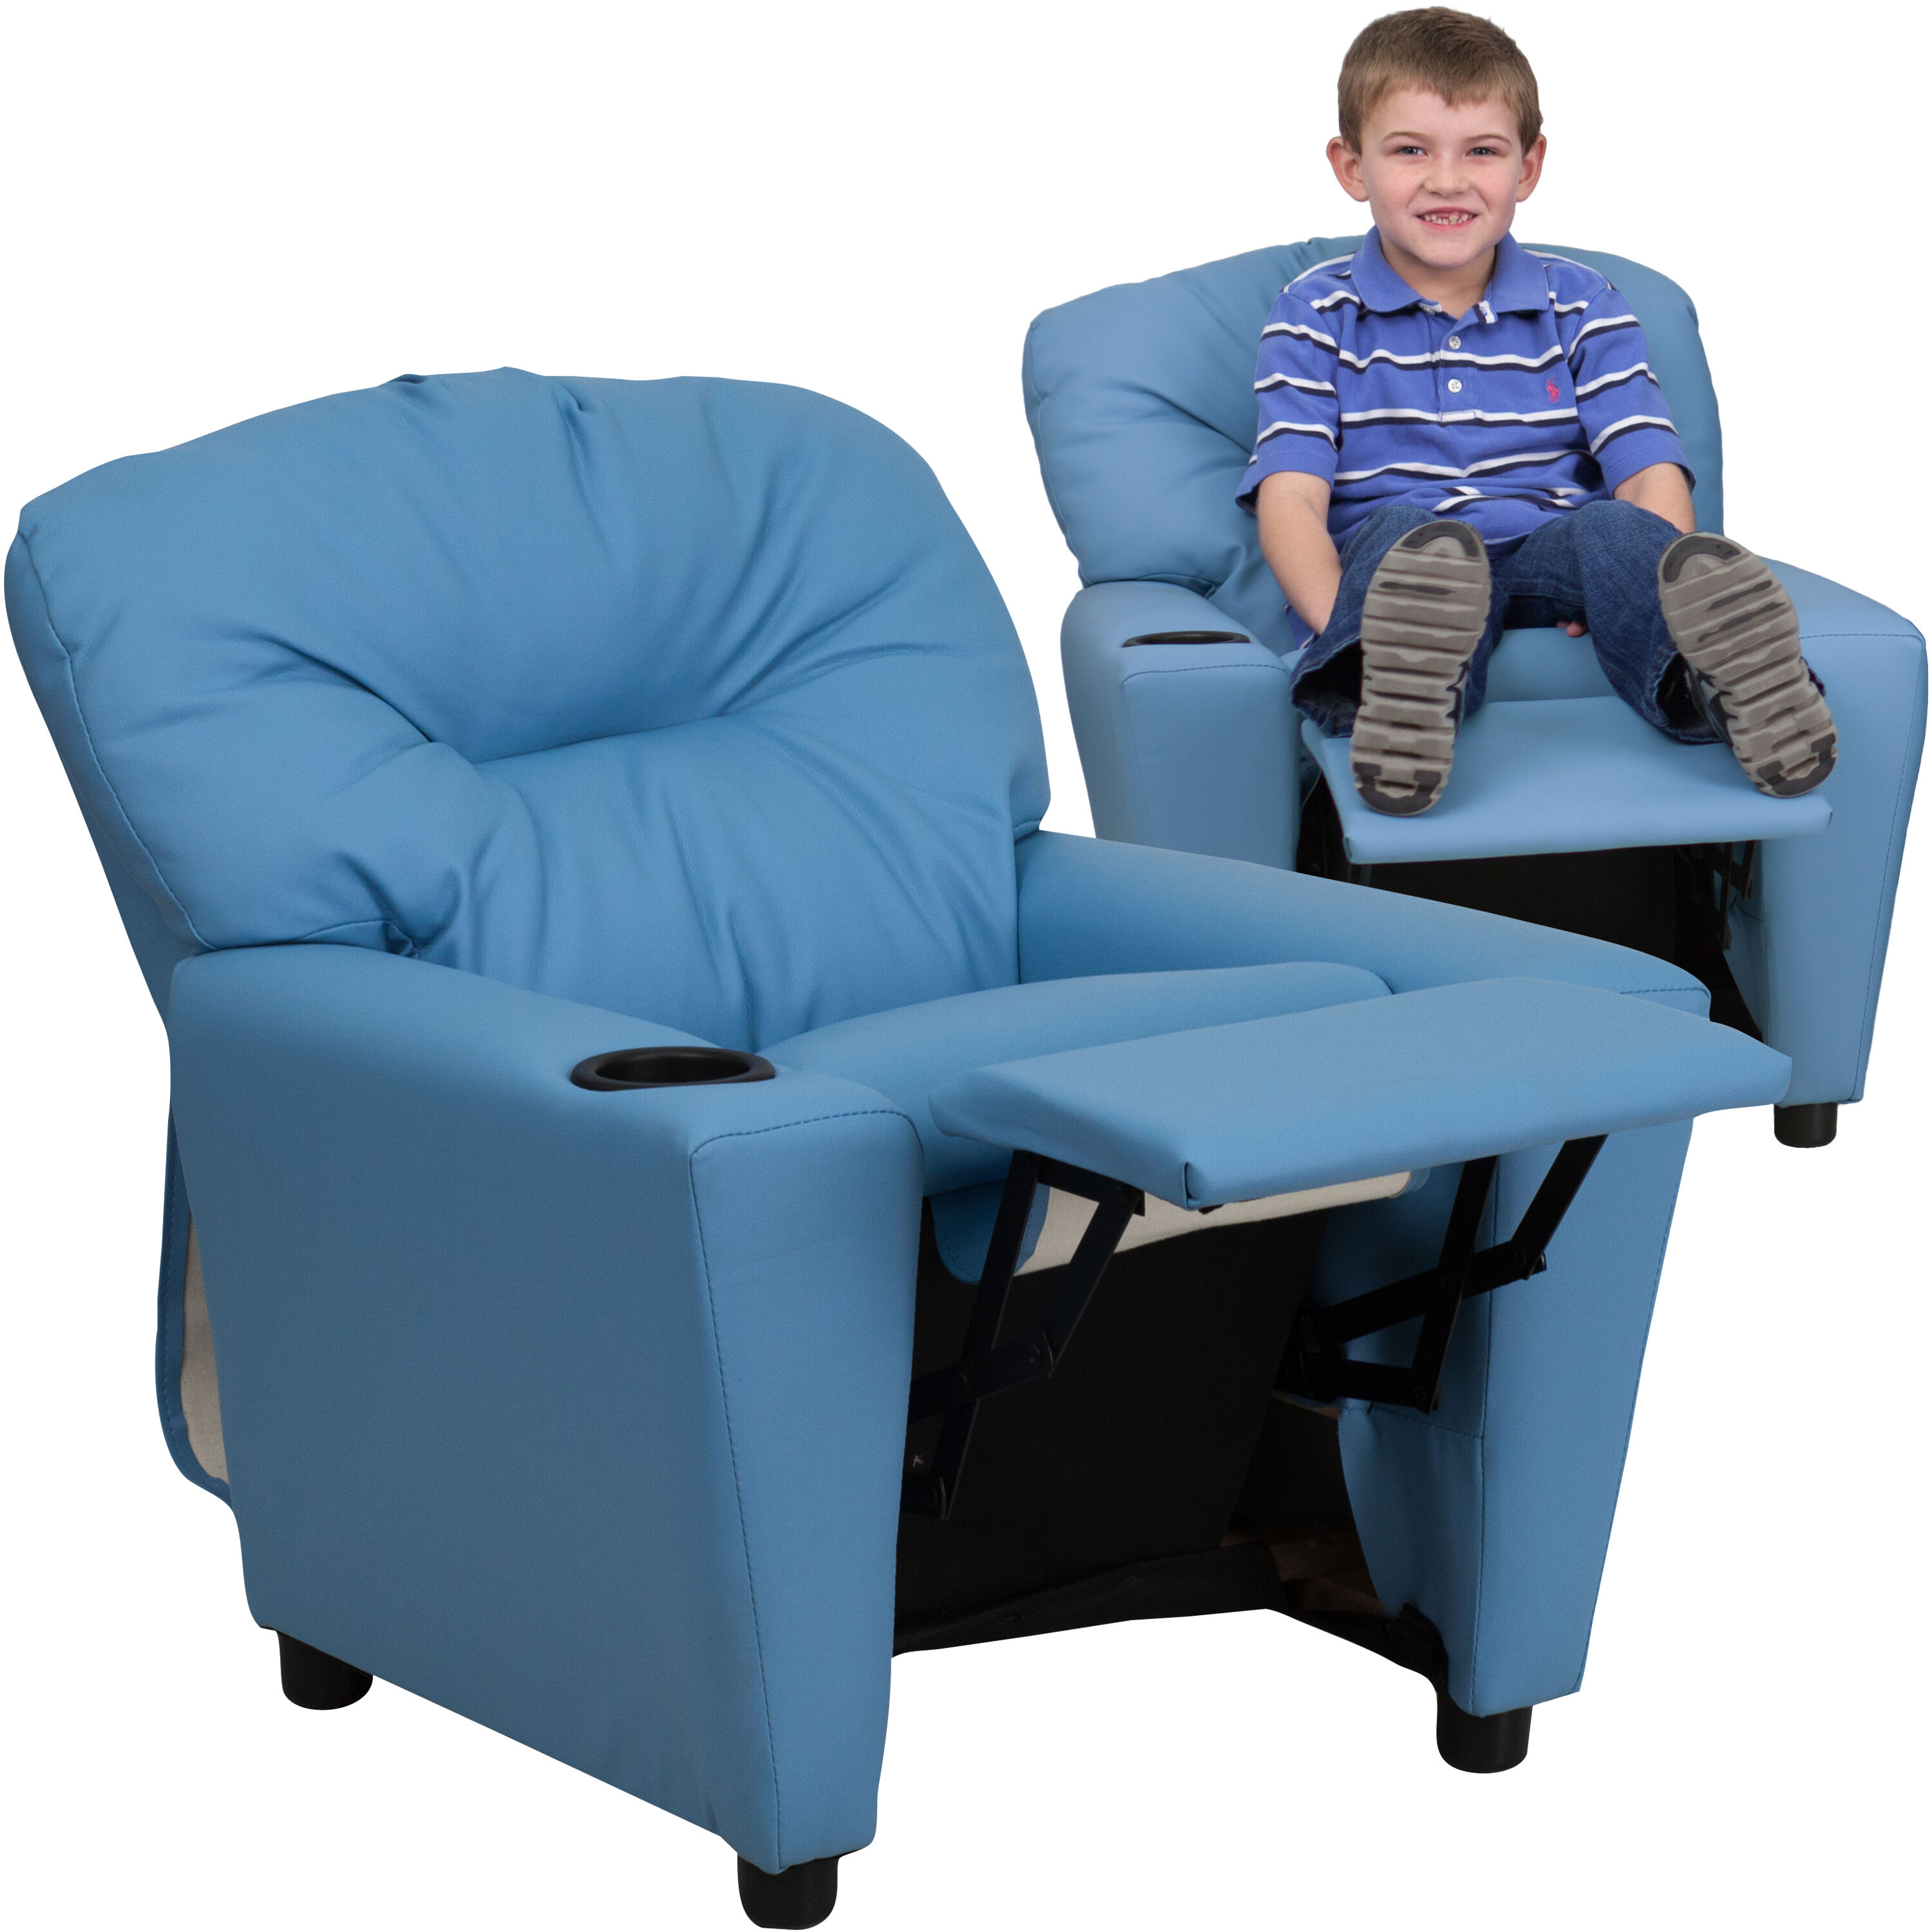 kid recliner chair revolving gem light blue kids bt 7950 ltblue gg bizchair